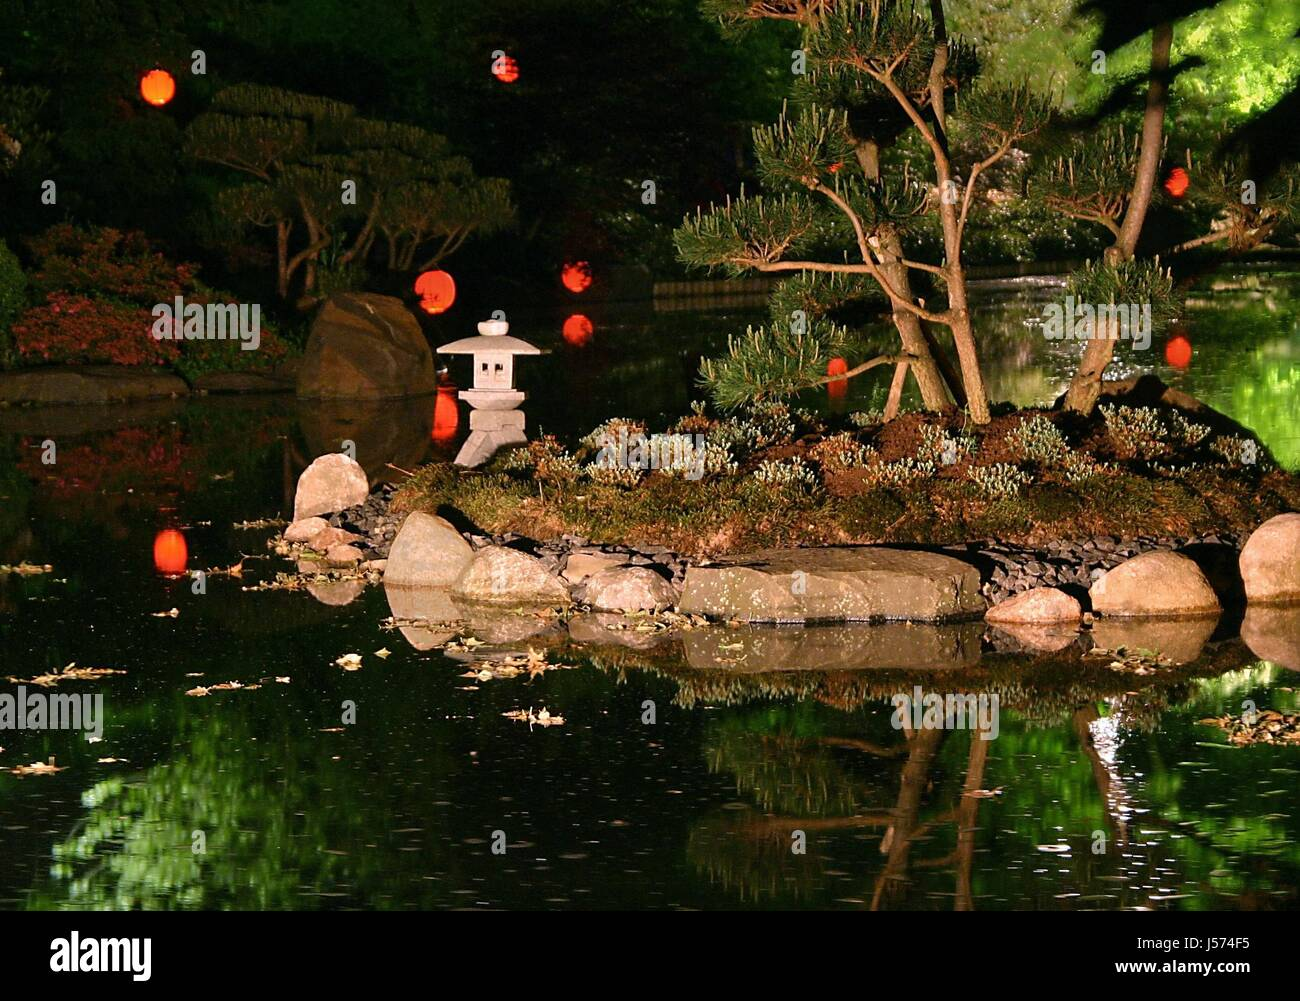 japanese garden at night Stock Photo Royalty Free Image